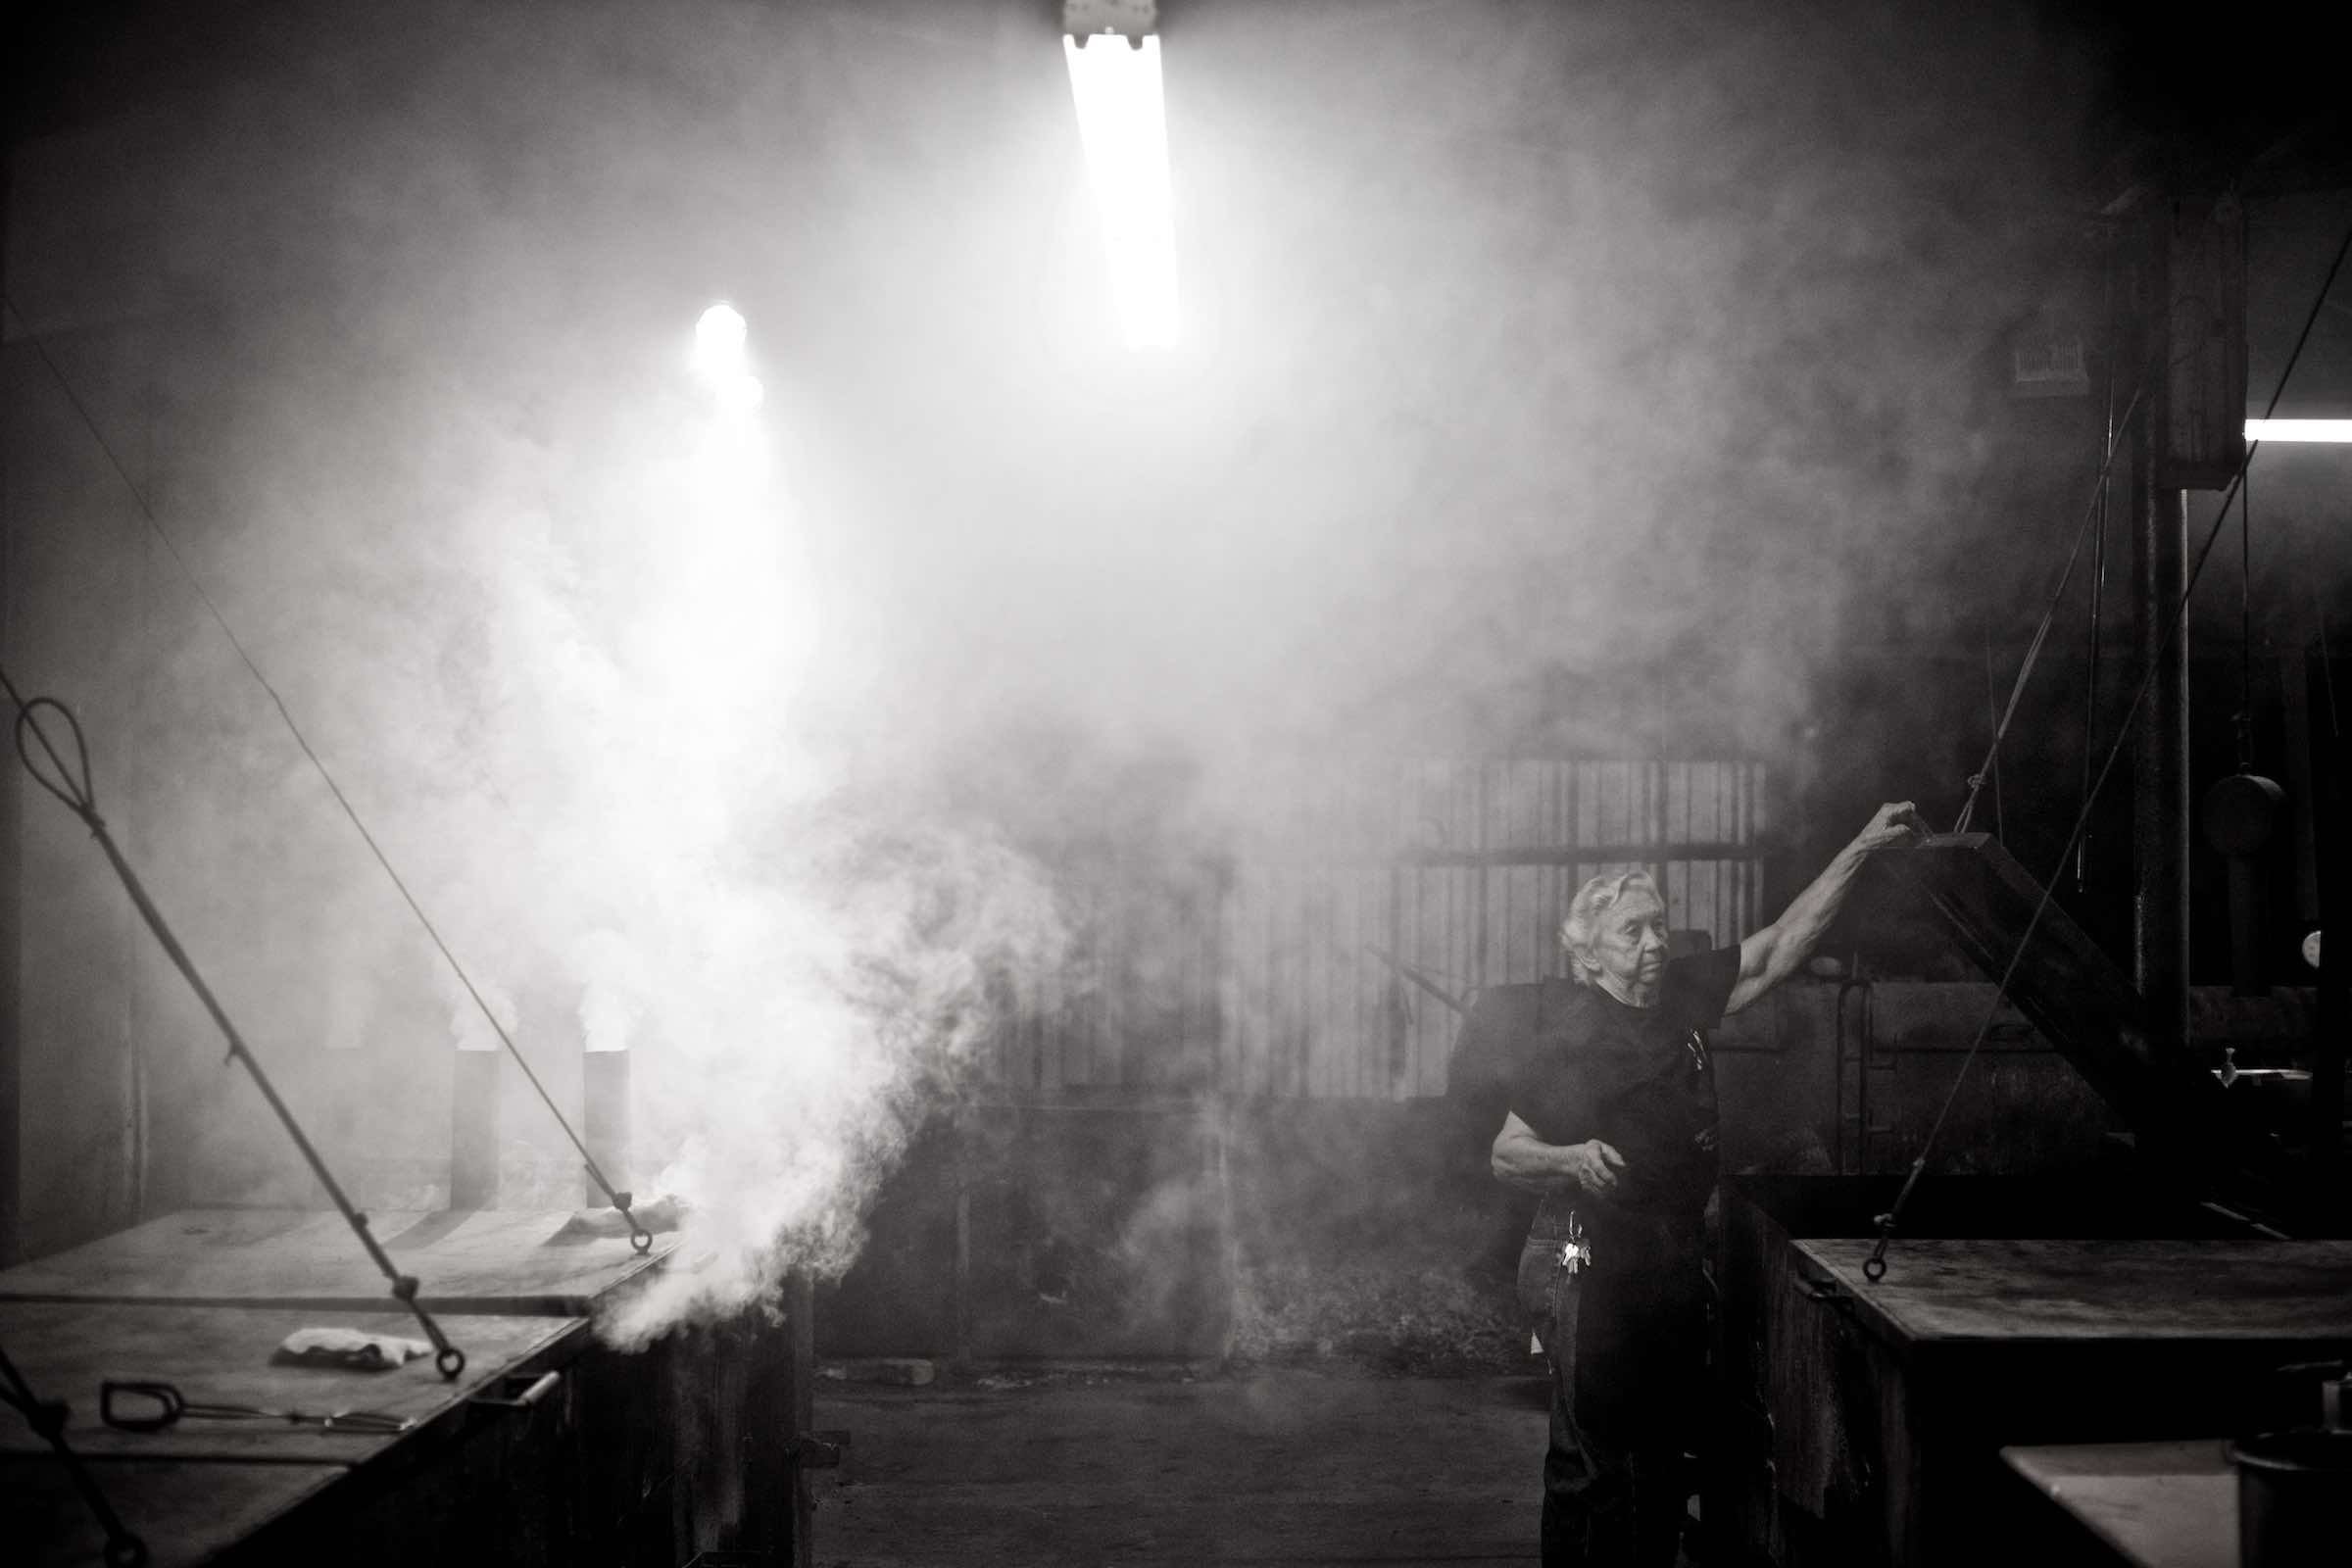 Jody Horton Photography - Pit master working in a smokey warehouse, shot in B&W.